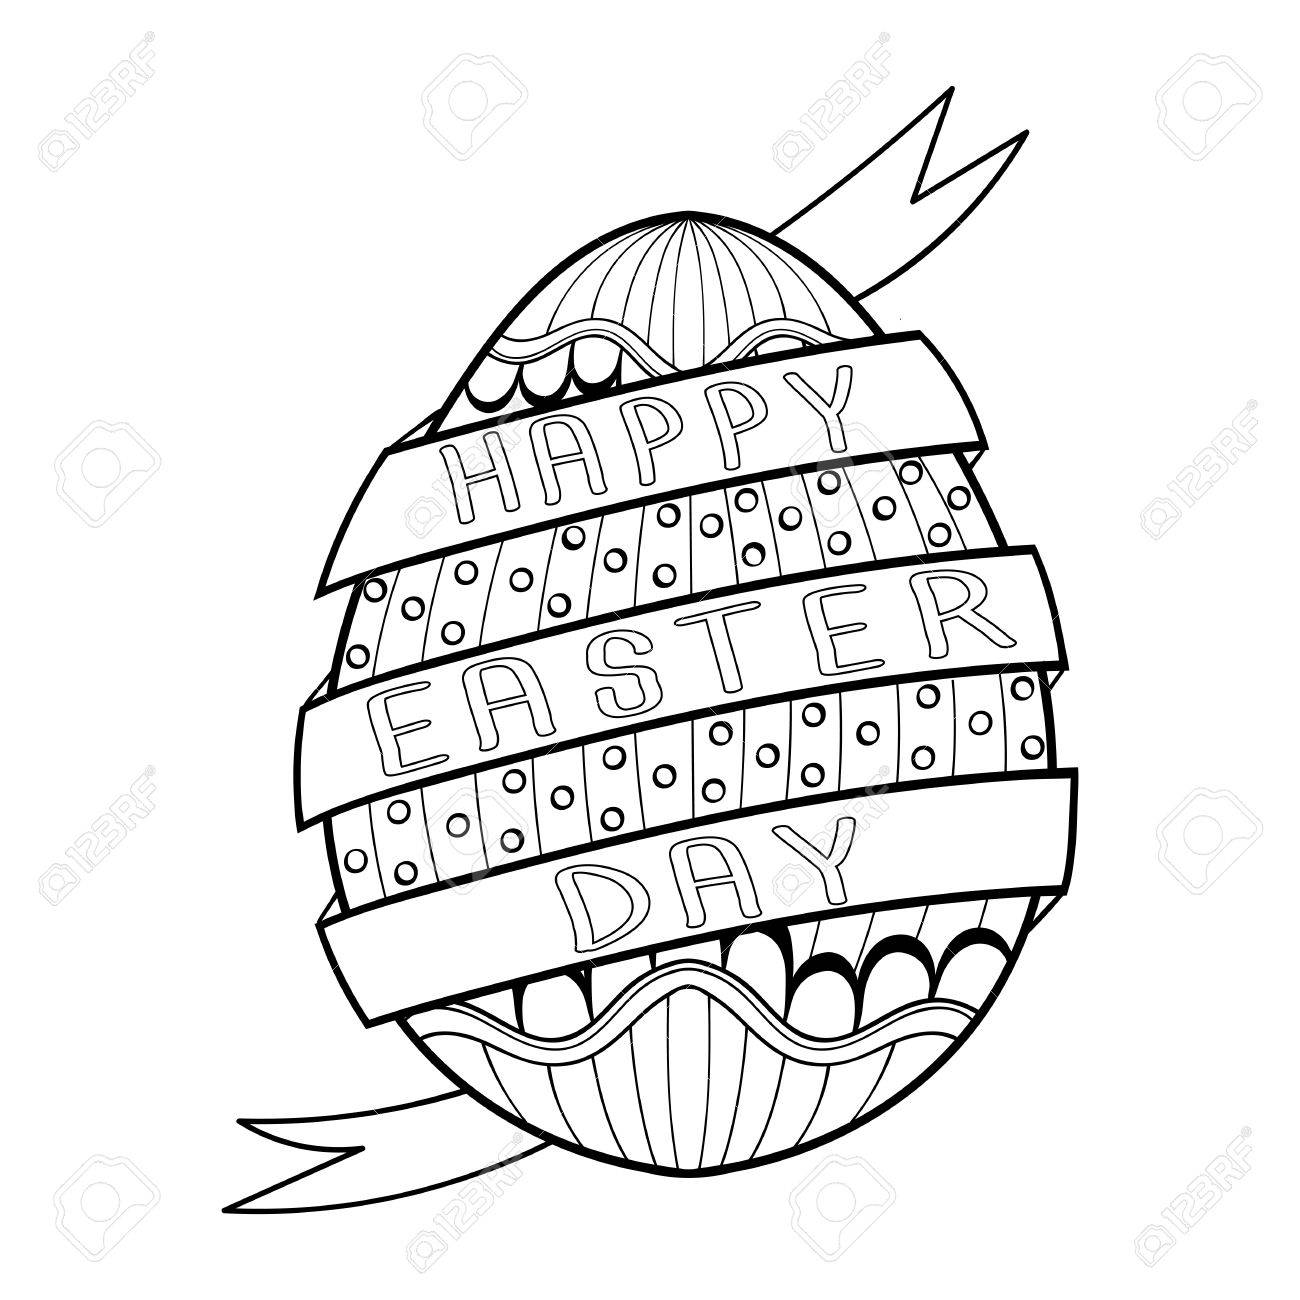 Hand Drawn Artistic Easter Egg For Adult Coloring Page In Doodle ...